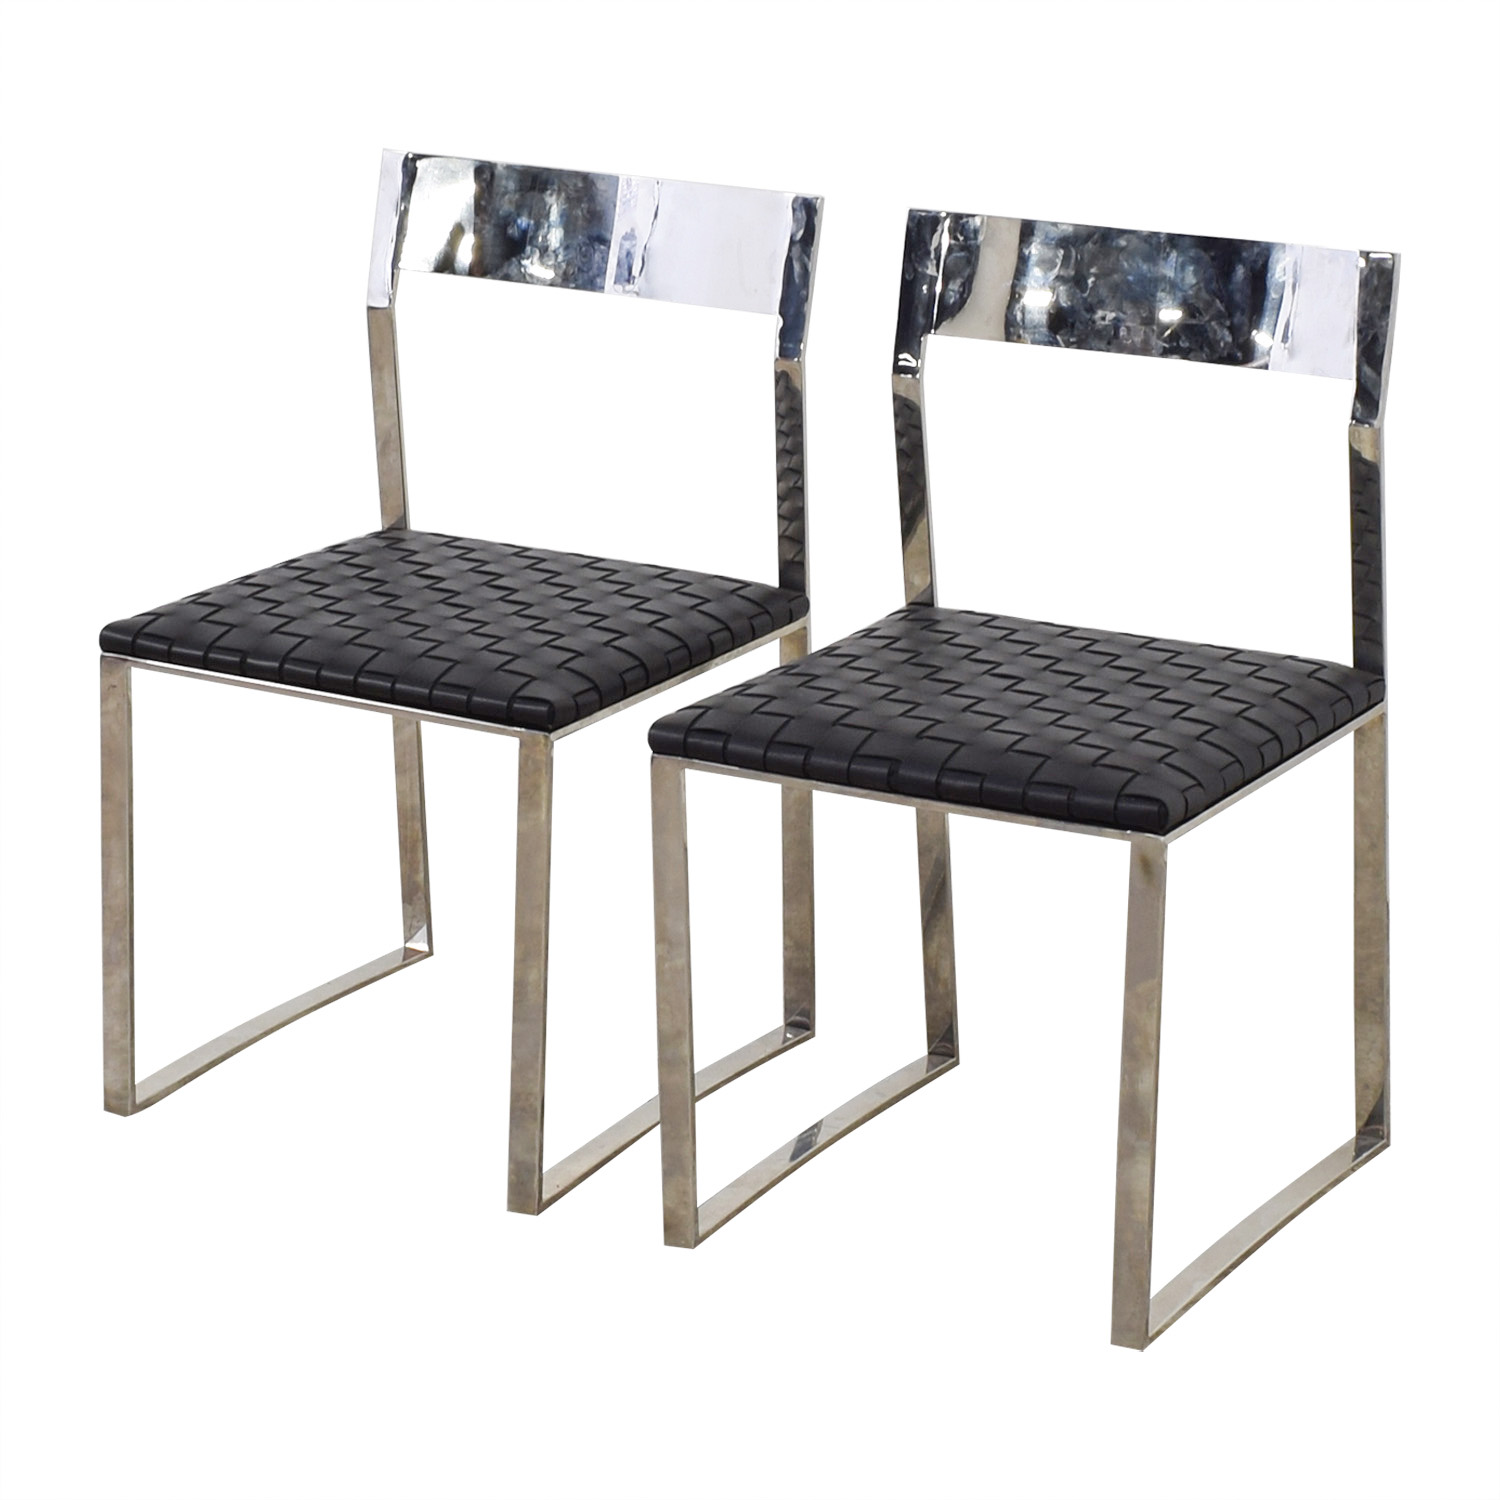 Nuevo Nuevo Camille Black Leather and Mirrored Steel Dining Chairs on sale